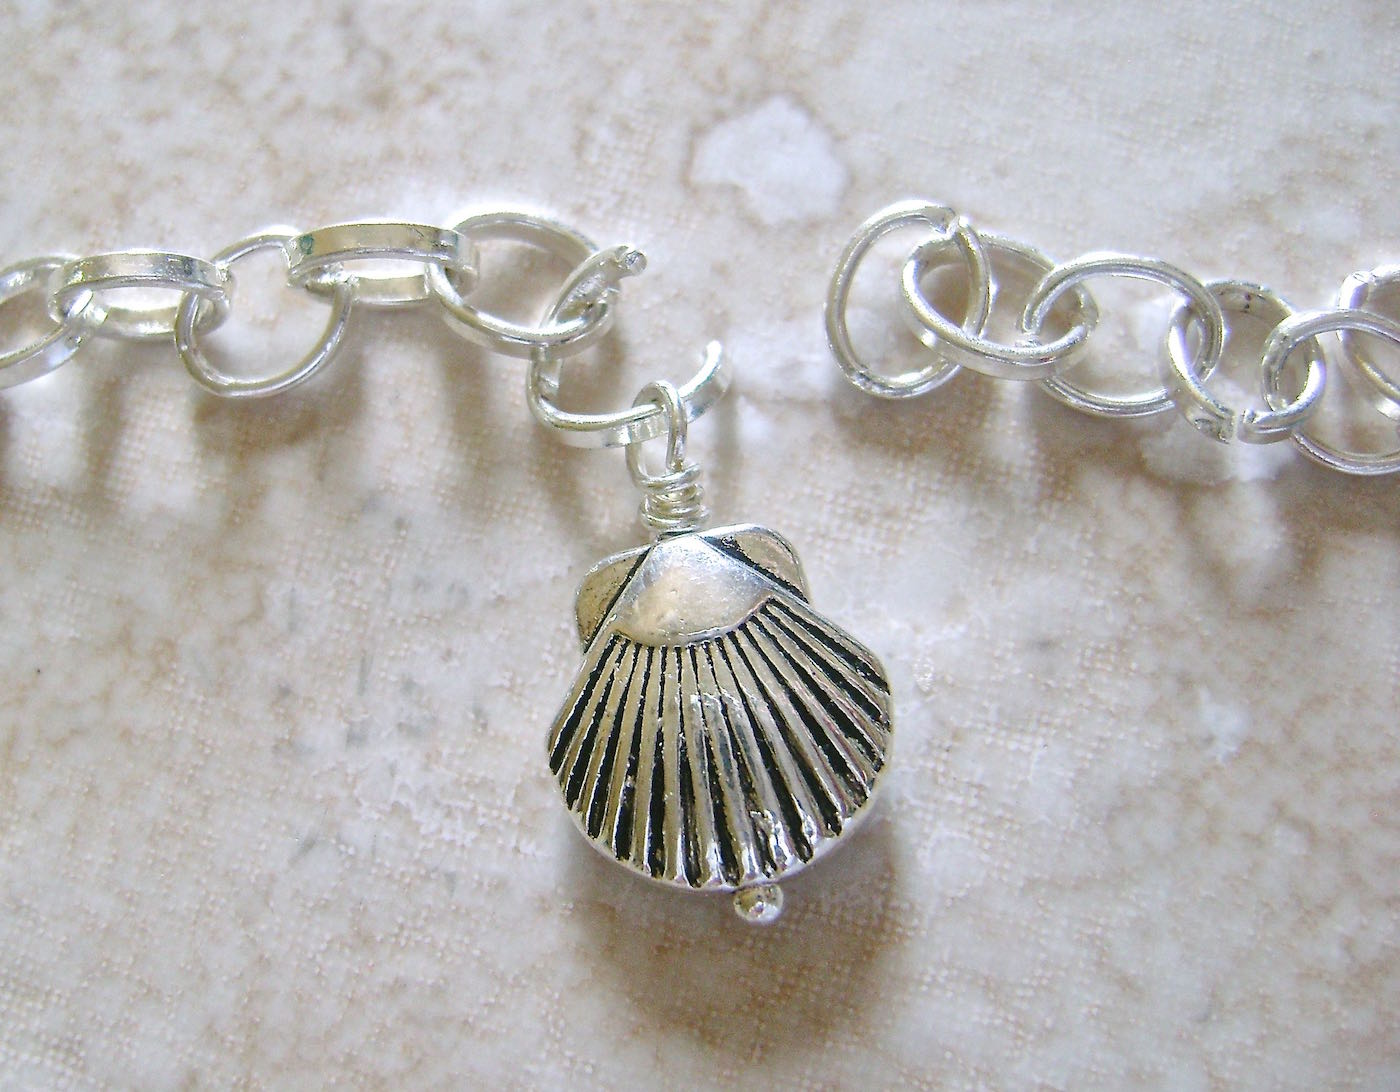 step 6 - Create 13 loop wrapped shells. Open the center link of the chain and attach a shell loop.